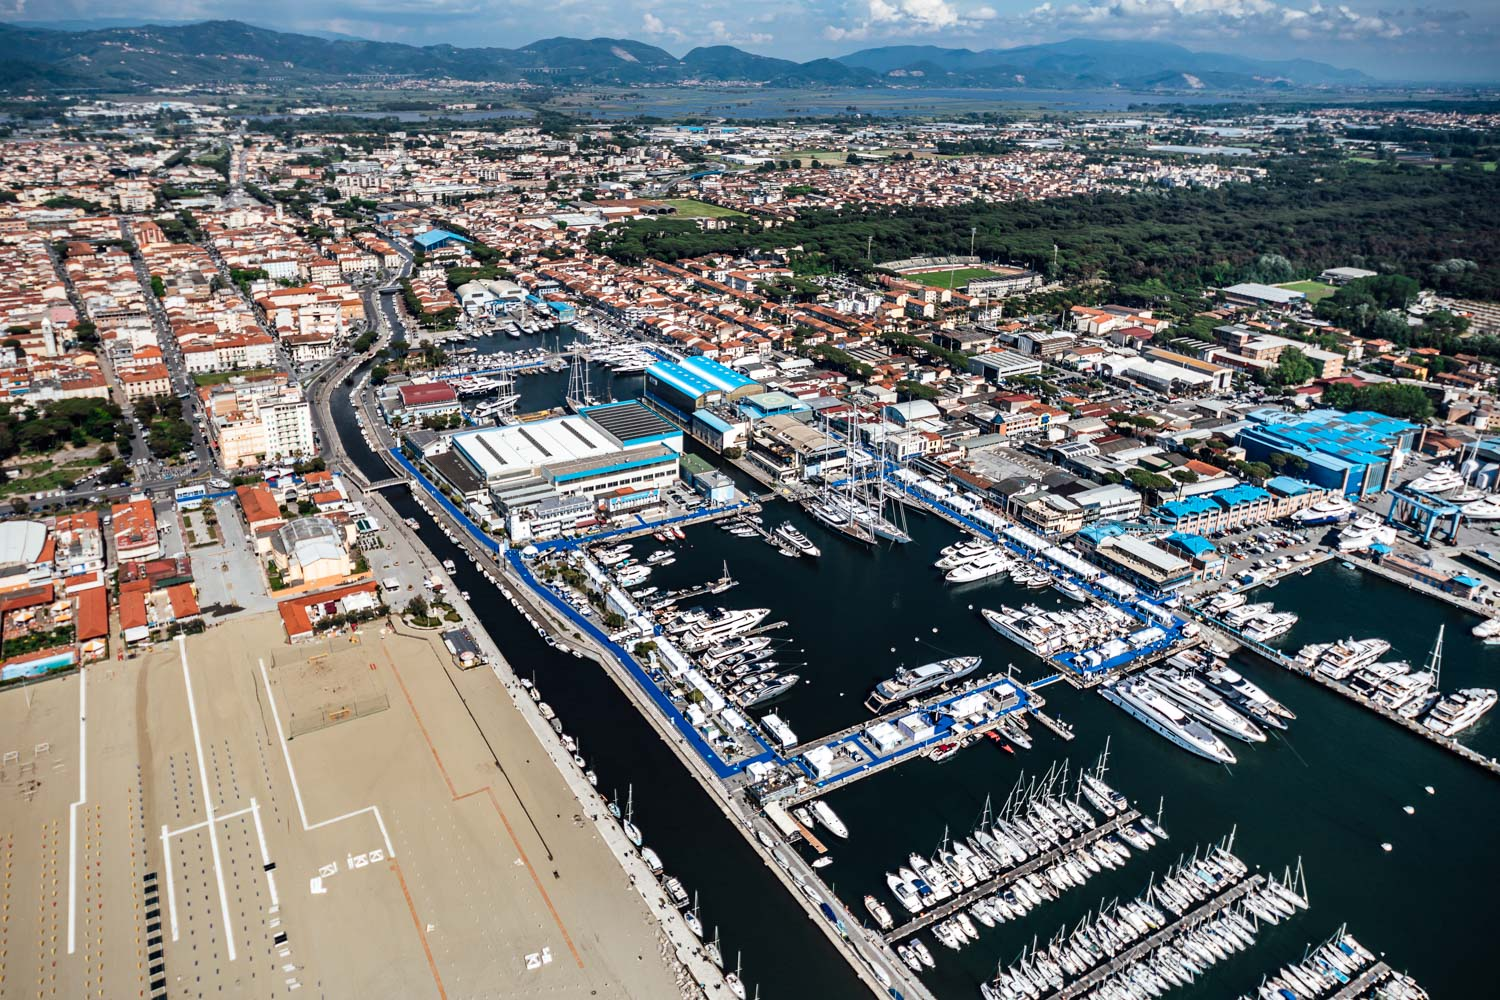 More than 22,000 visitors at the second edition  of the Versilia Yachting Rendez-vous